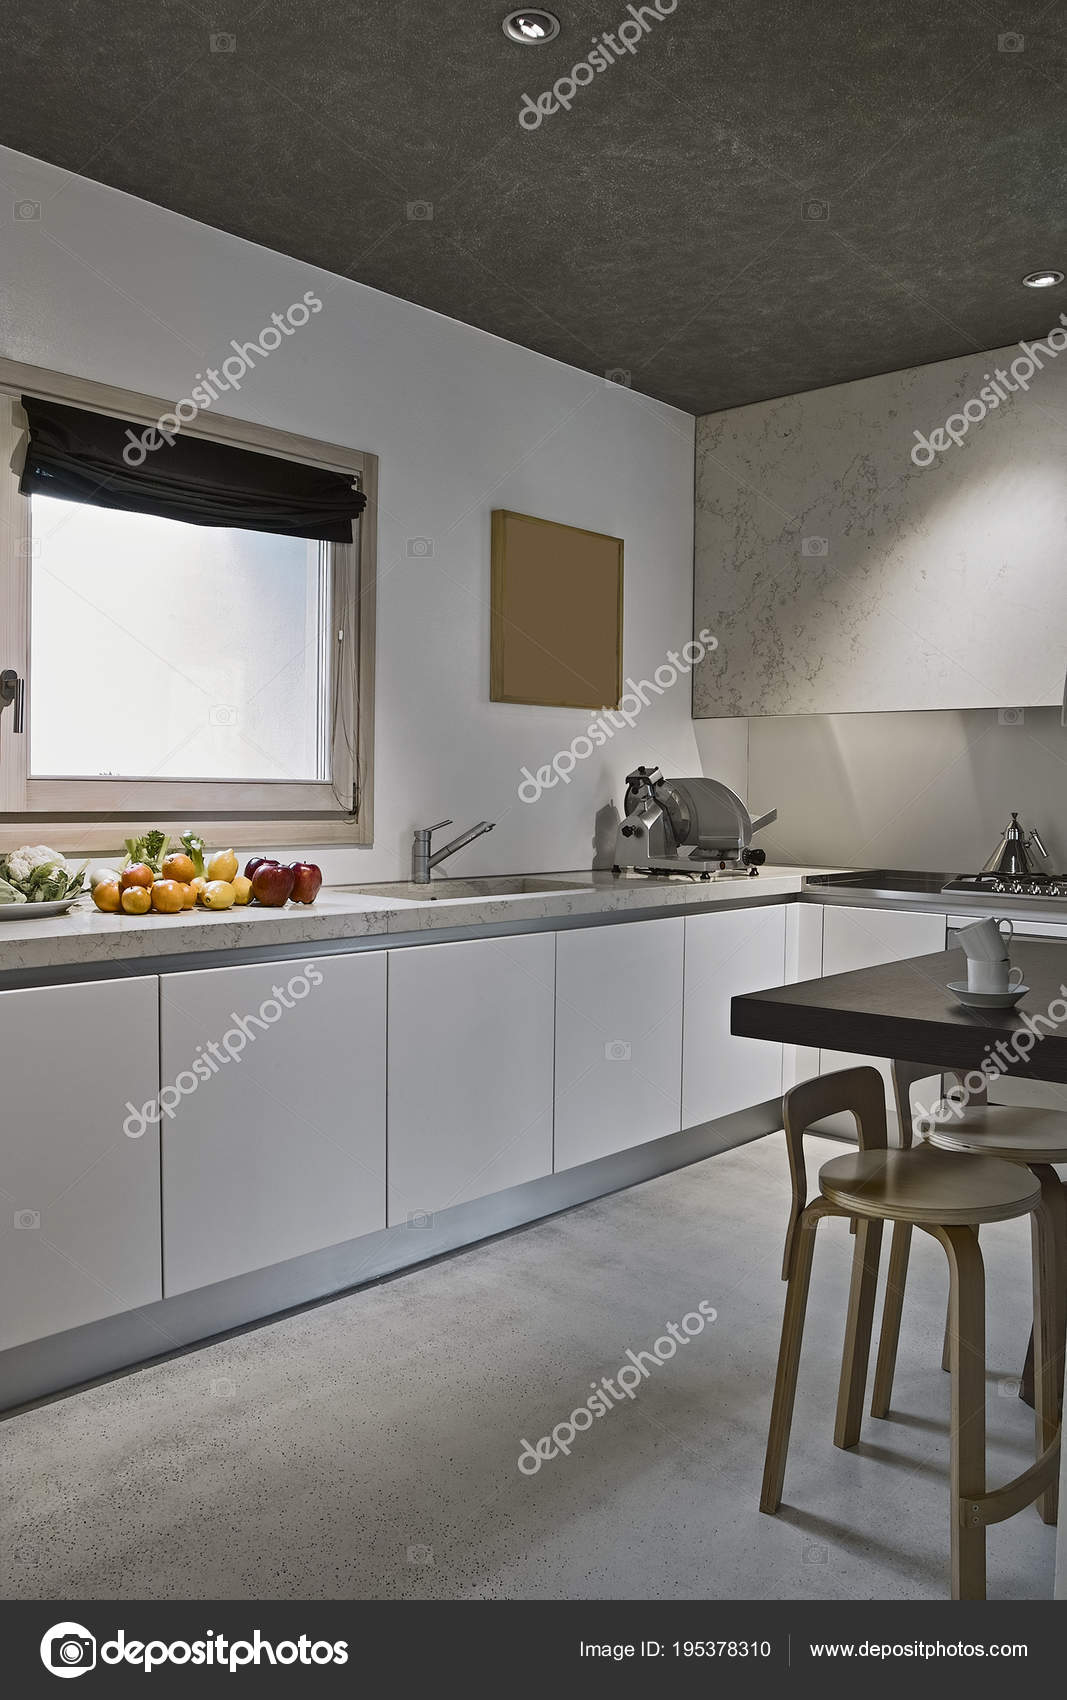 Interiors Shots Of A Modern Kitchen With Fruits Fresh On The Work